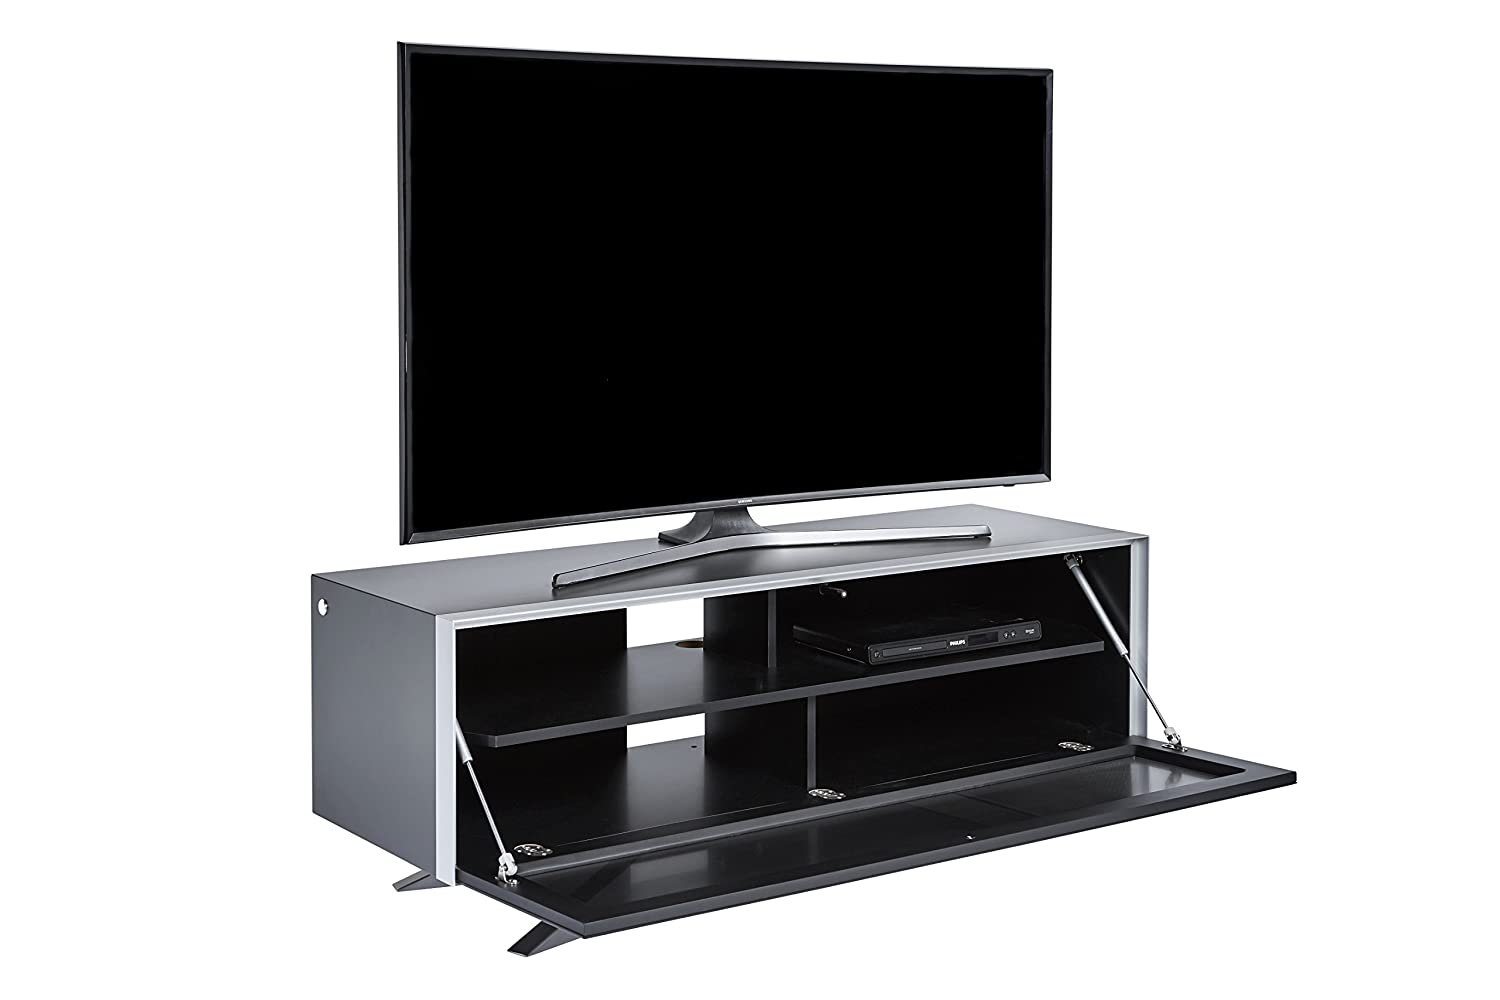 jahnke tv lowboard Jahnke SL 5130 AF TV Stand, Wood, brown, 49.3 x 45 x 130 cm: Amazon.co.uk:  Kitchen u0026 Home